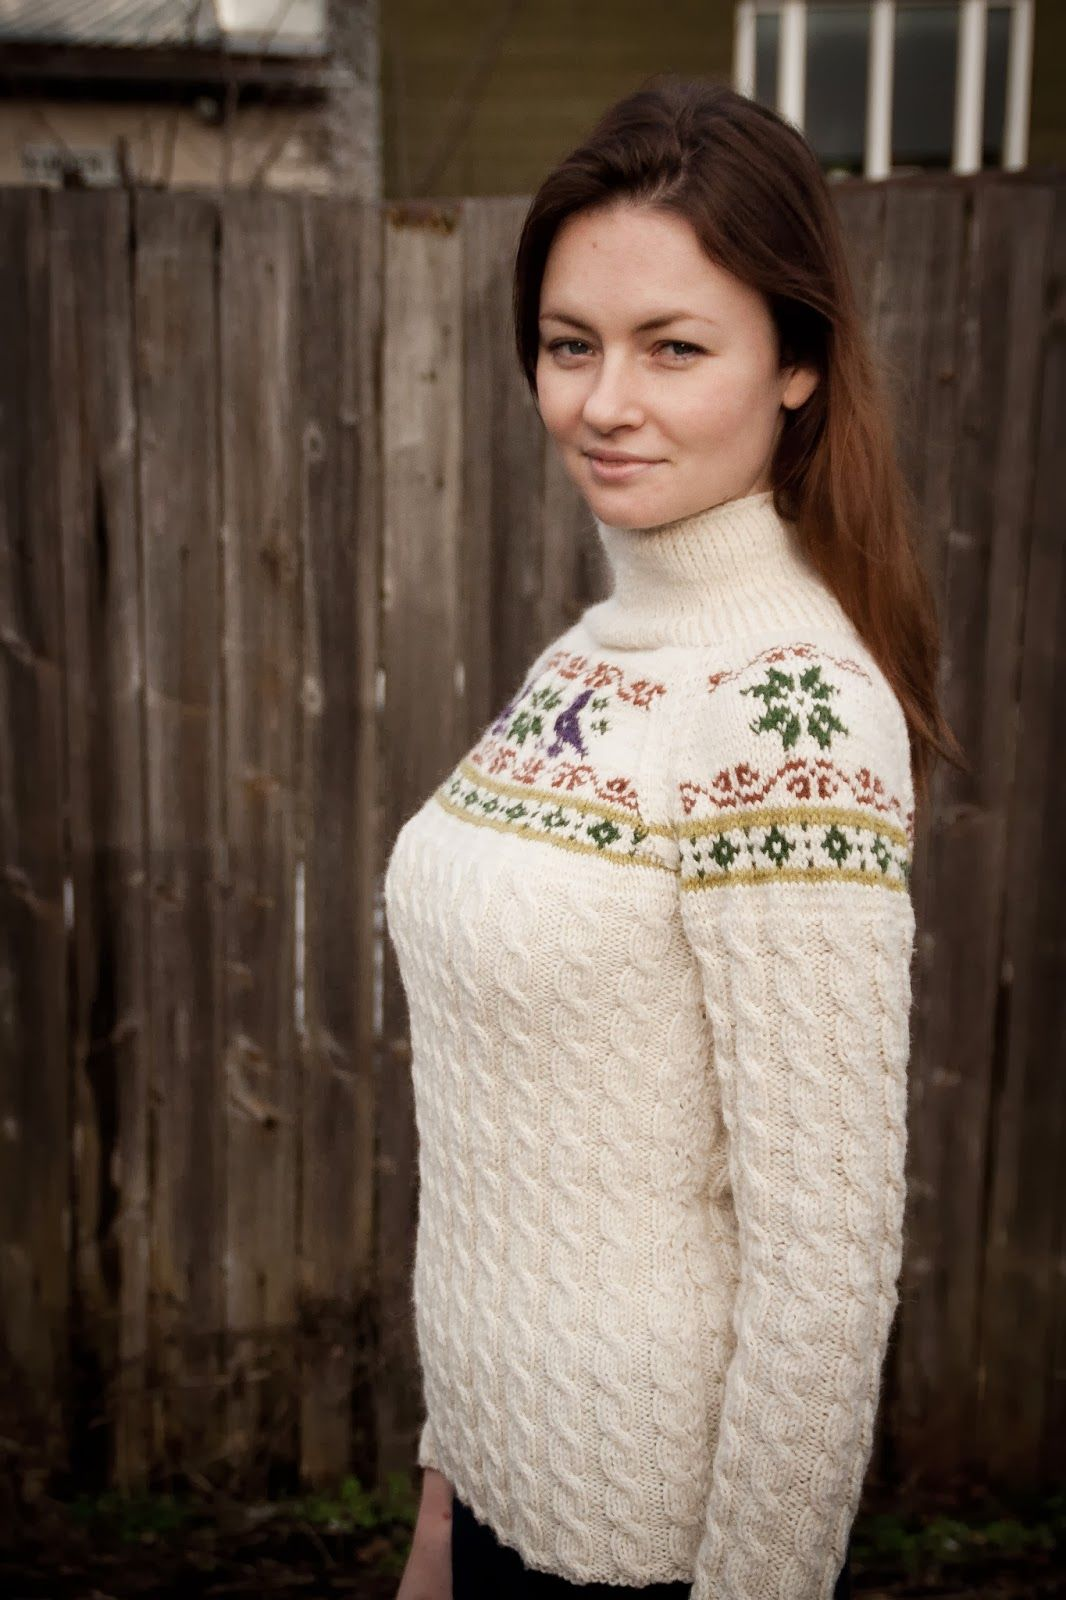 Knitted skiing sweater